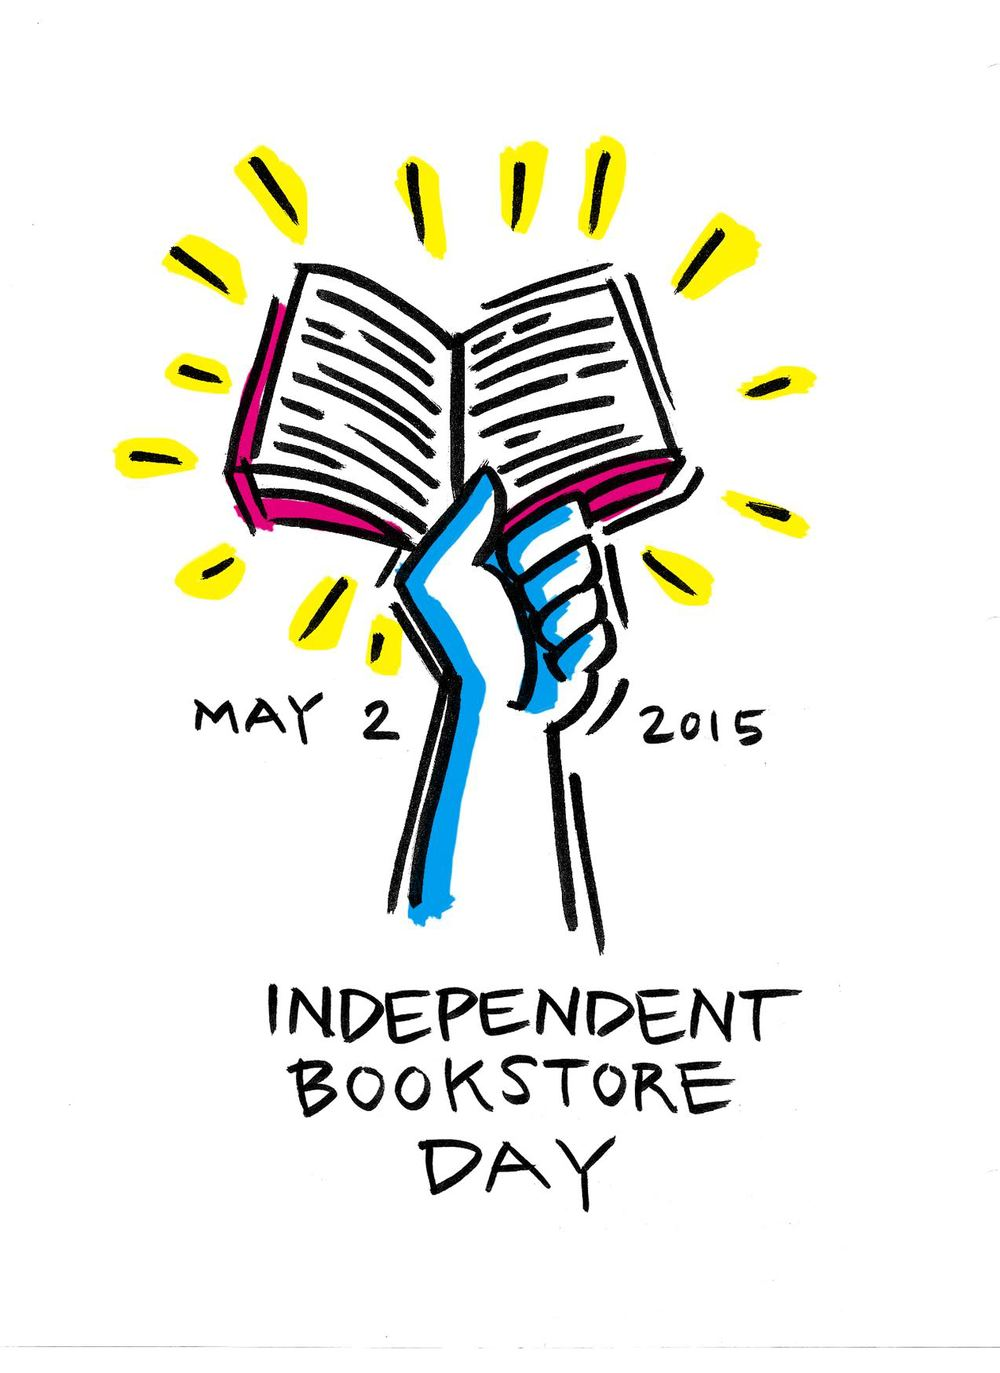 Join us from 10-6 for limited edition IBD items & general bookish fun.  We can't wait!